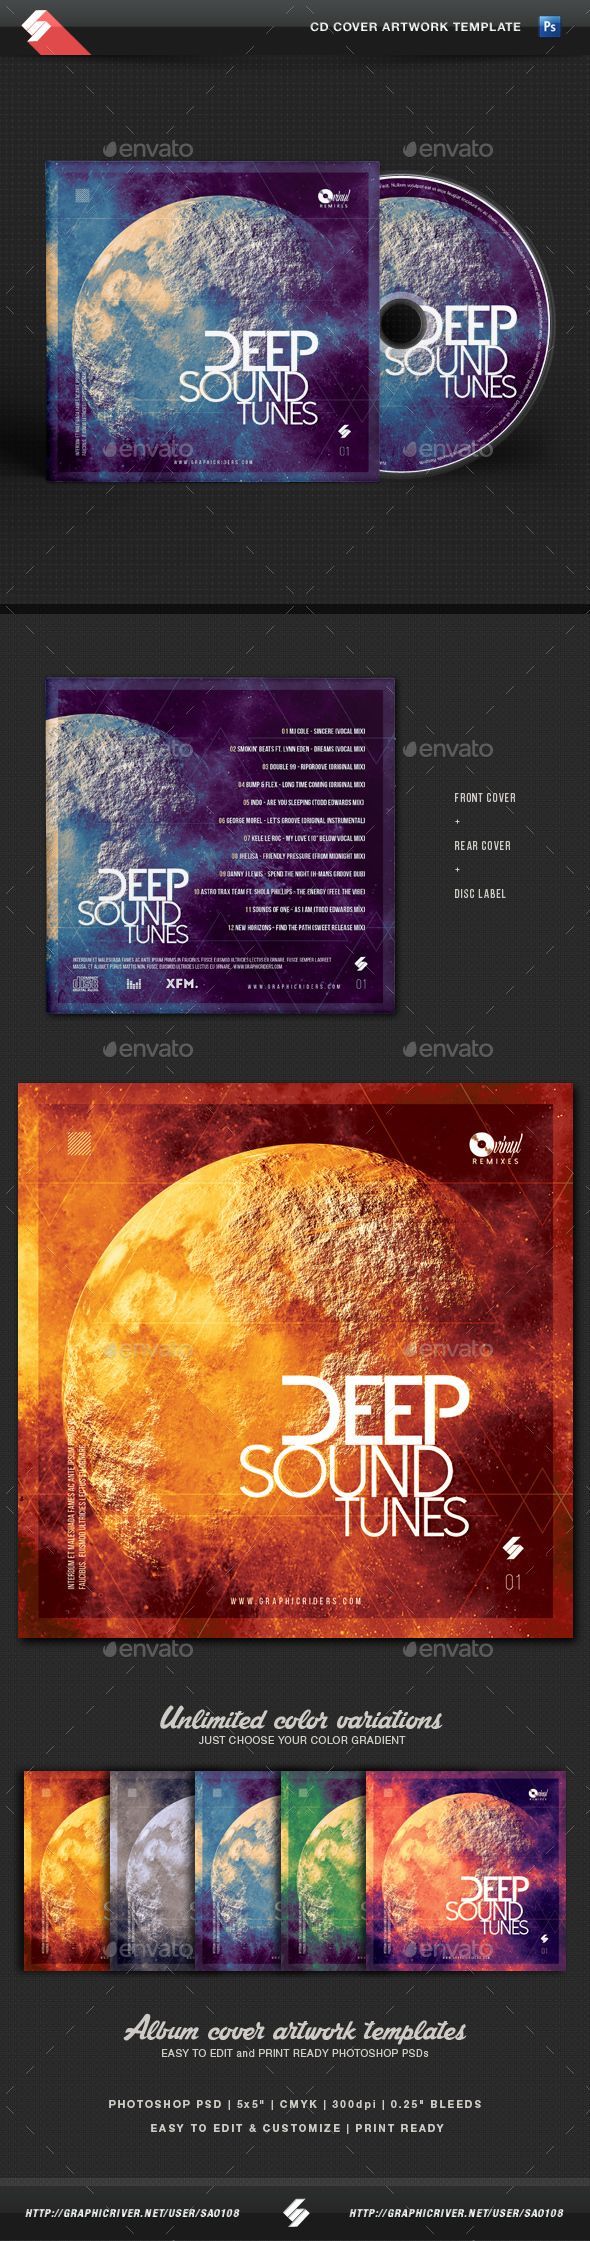 Deep Sound Tunes - CD Cover Template